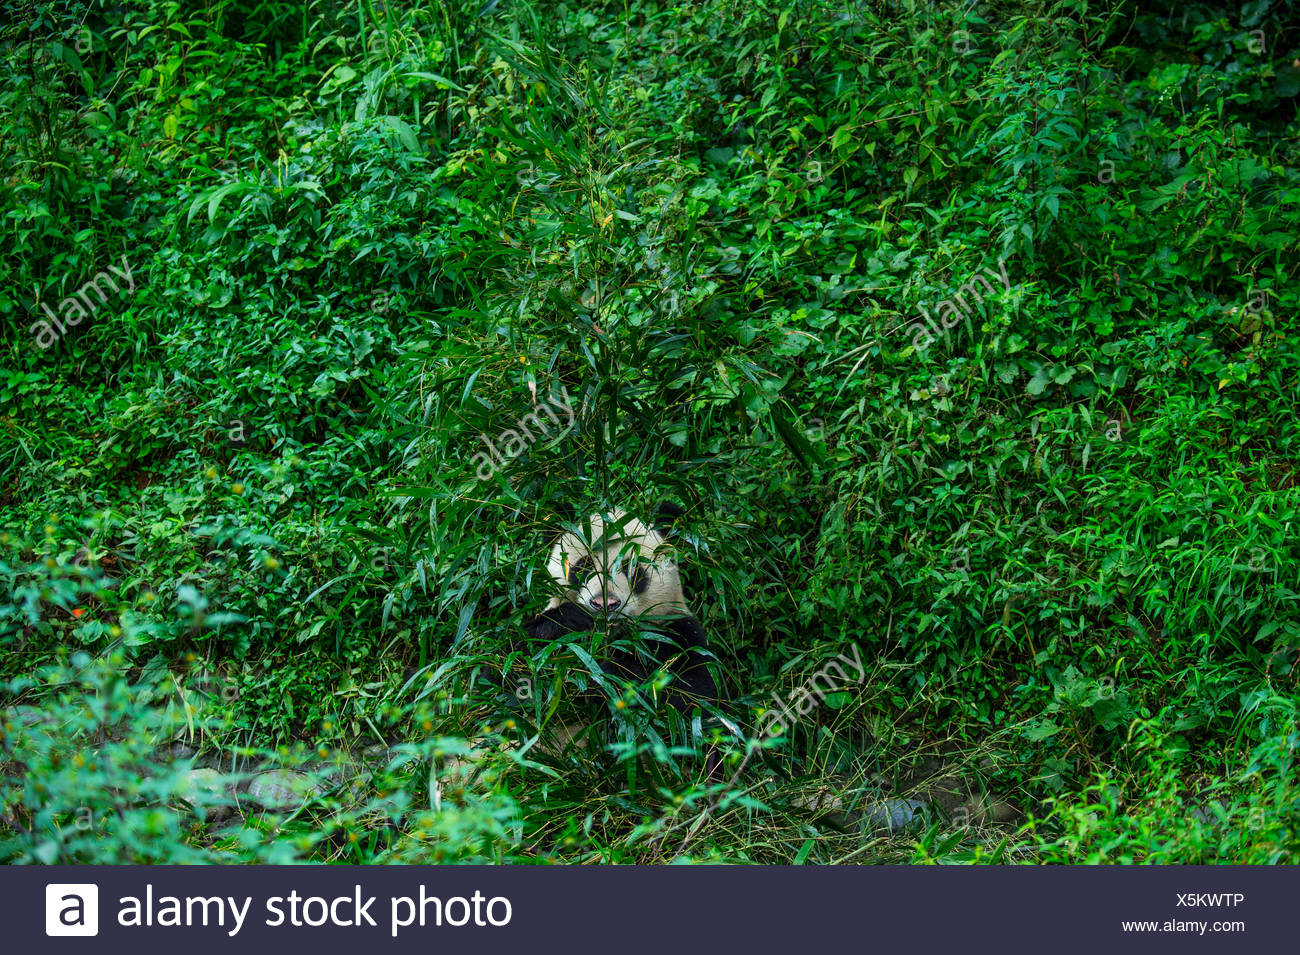 A giant panda spends much of the day surrounded by and munching on bamboo at Bifengxia Giant Panda Breeding and Research Center. - Stock Image